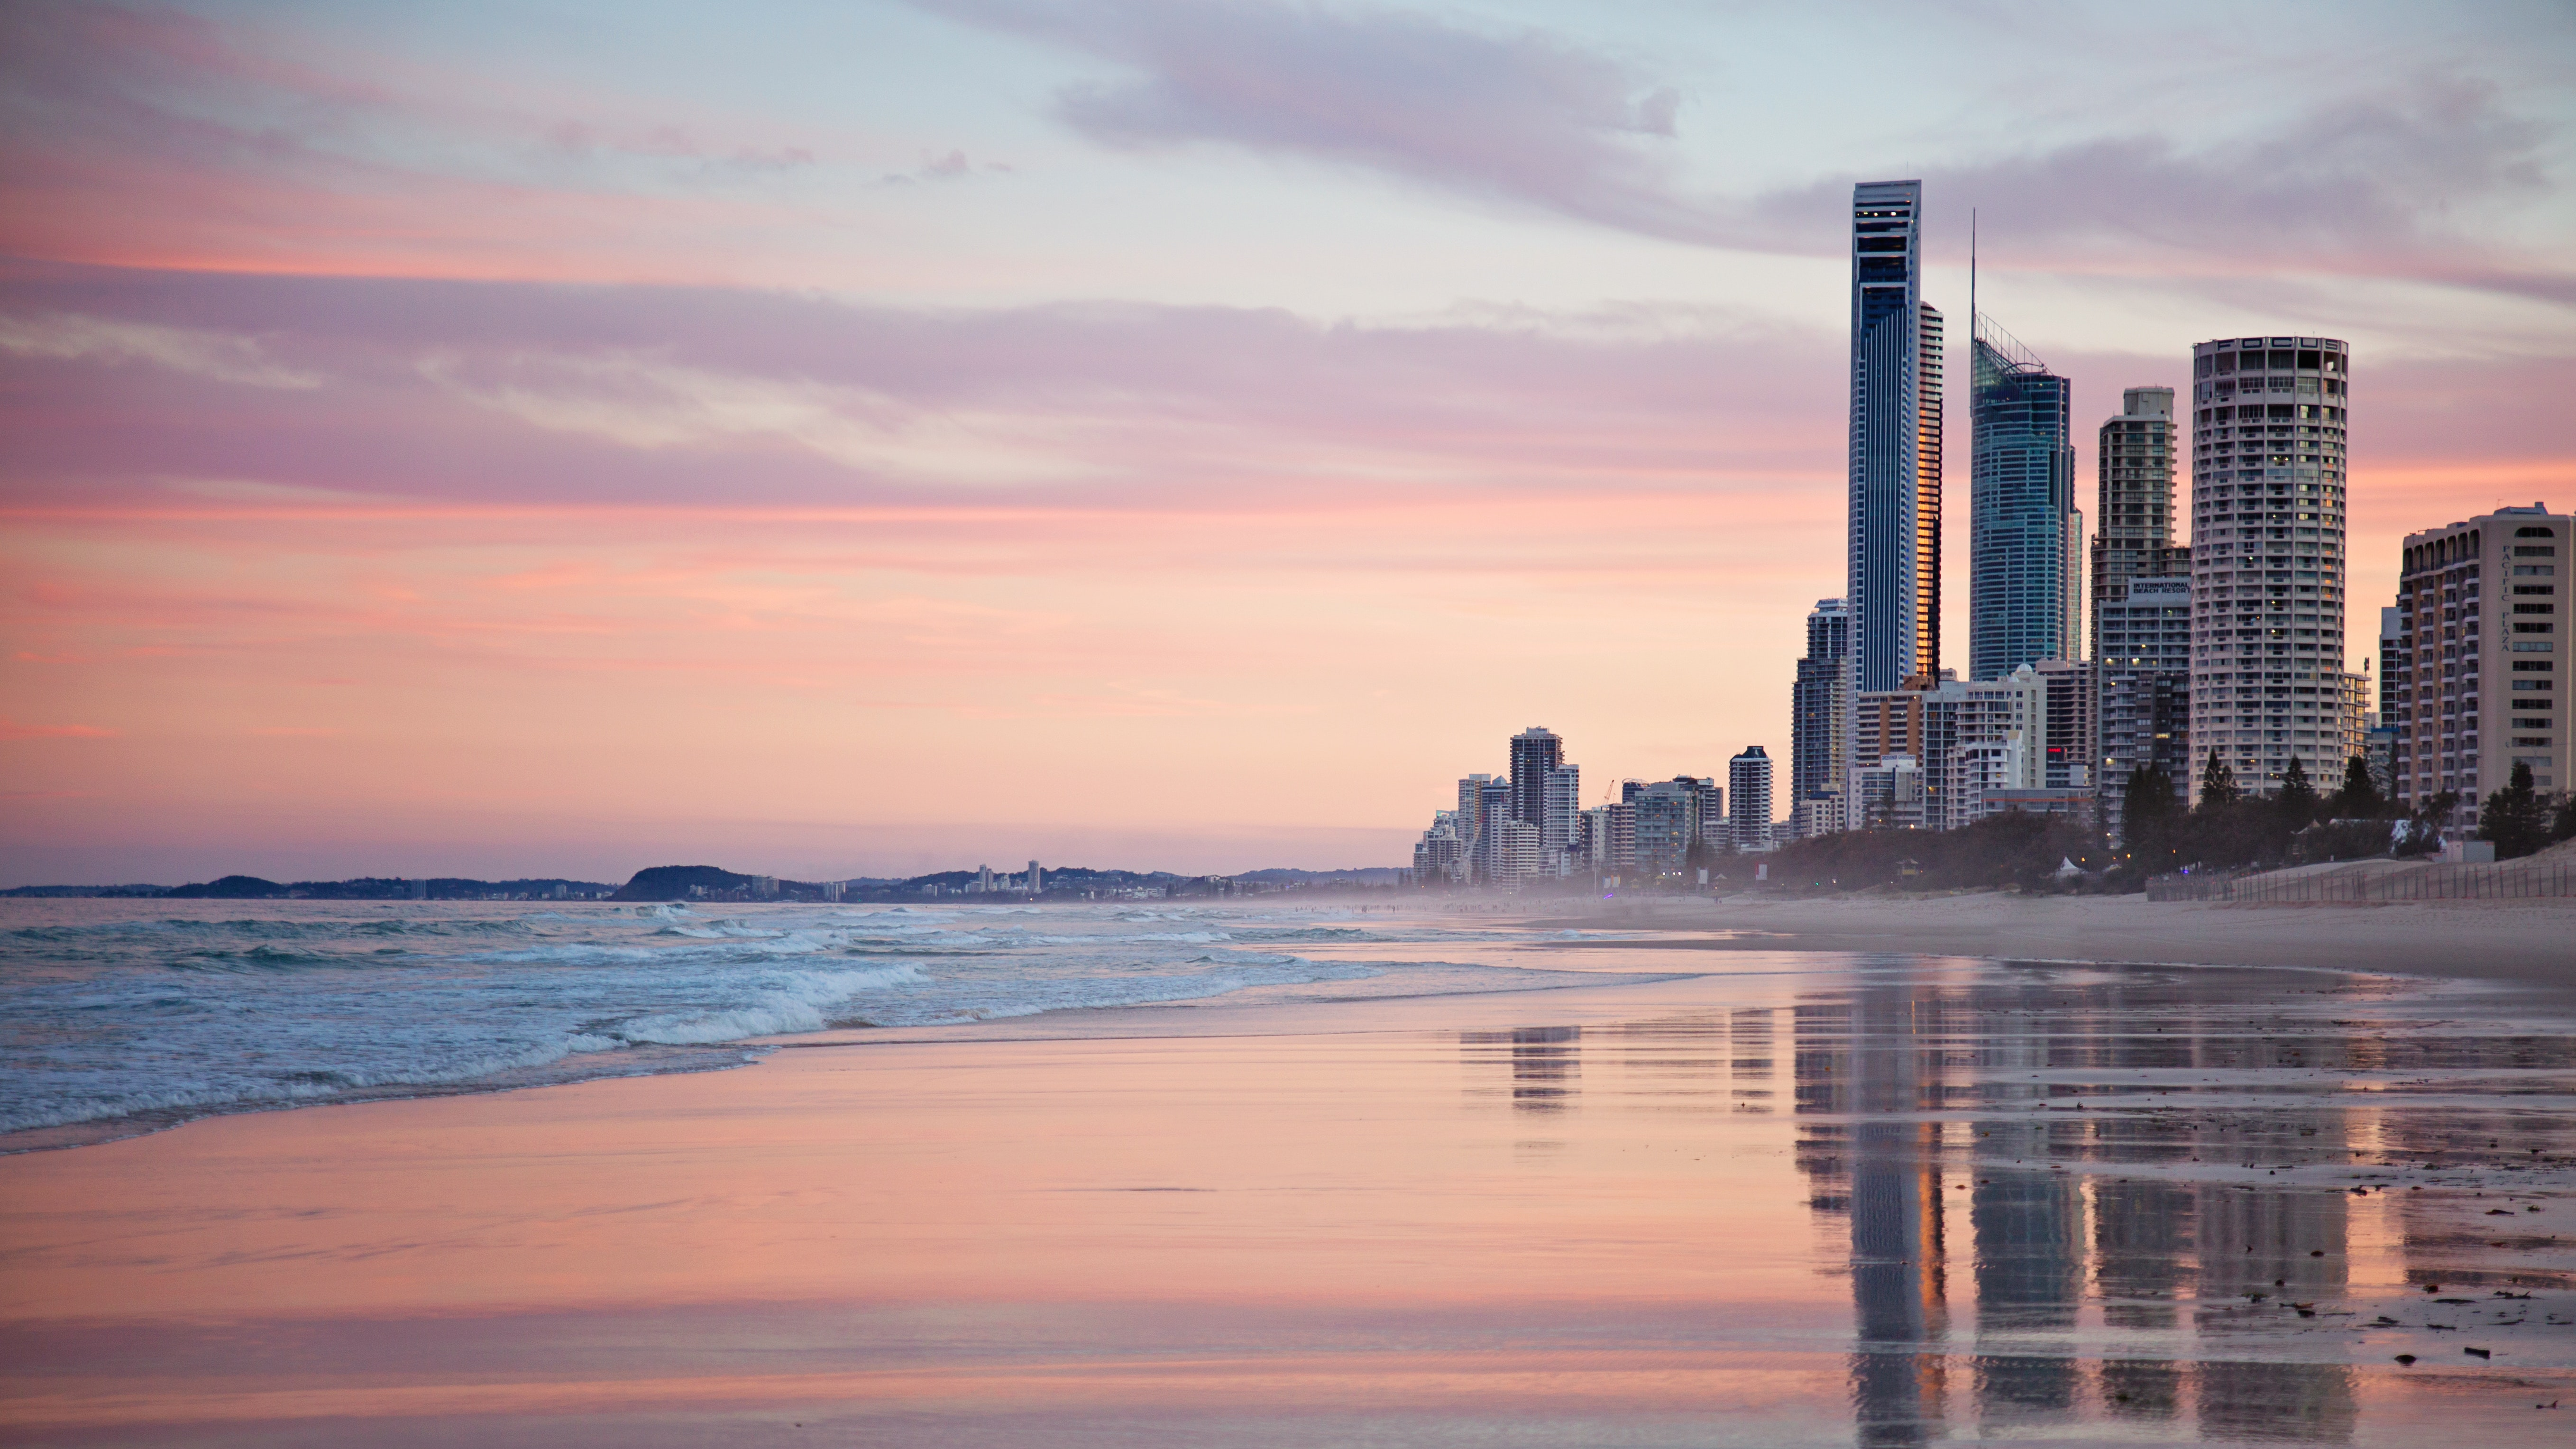 Tall City Buildings Near Beach Shore during Sunset, Architecture, Sun, Seashore, Sky, HQ Photo